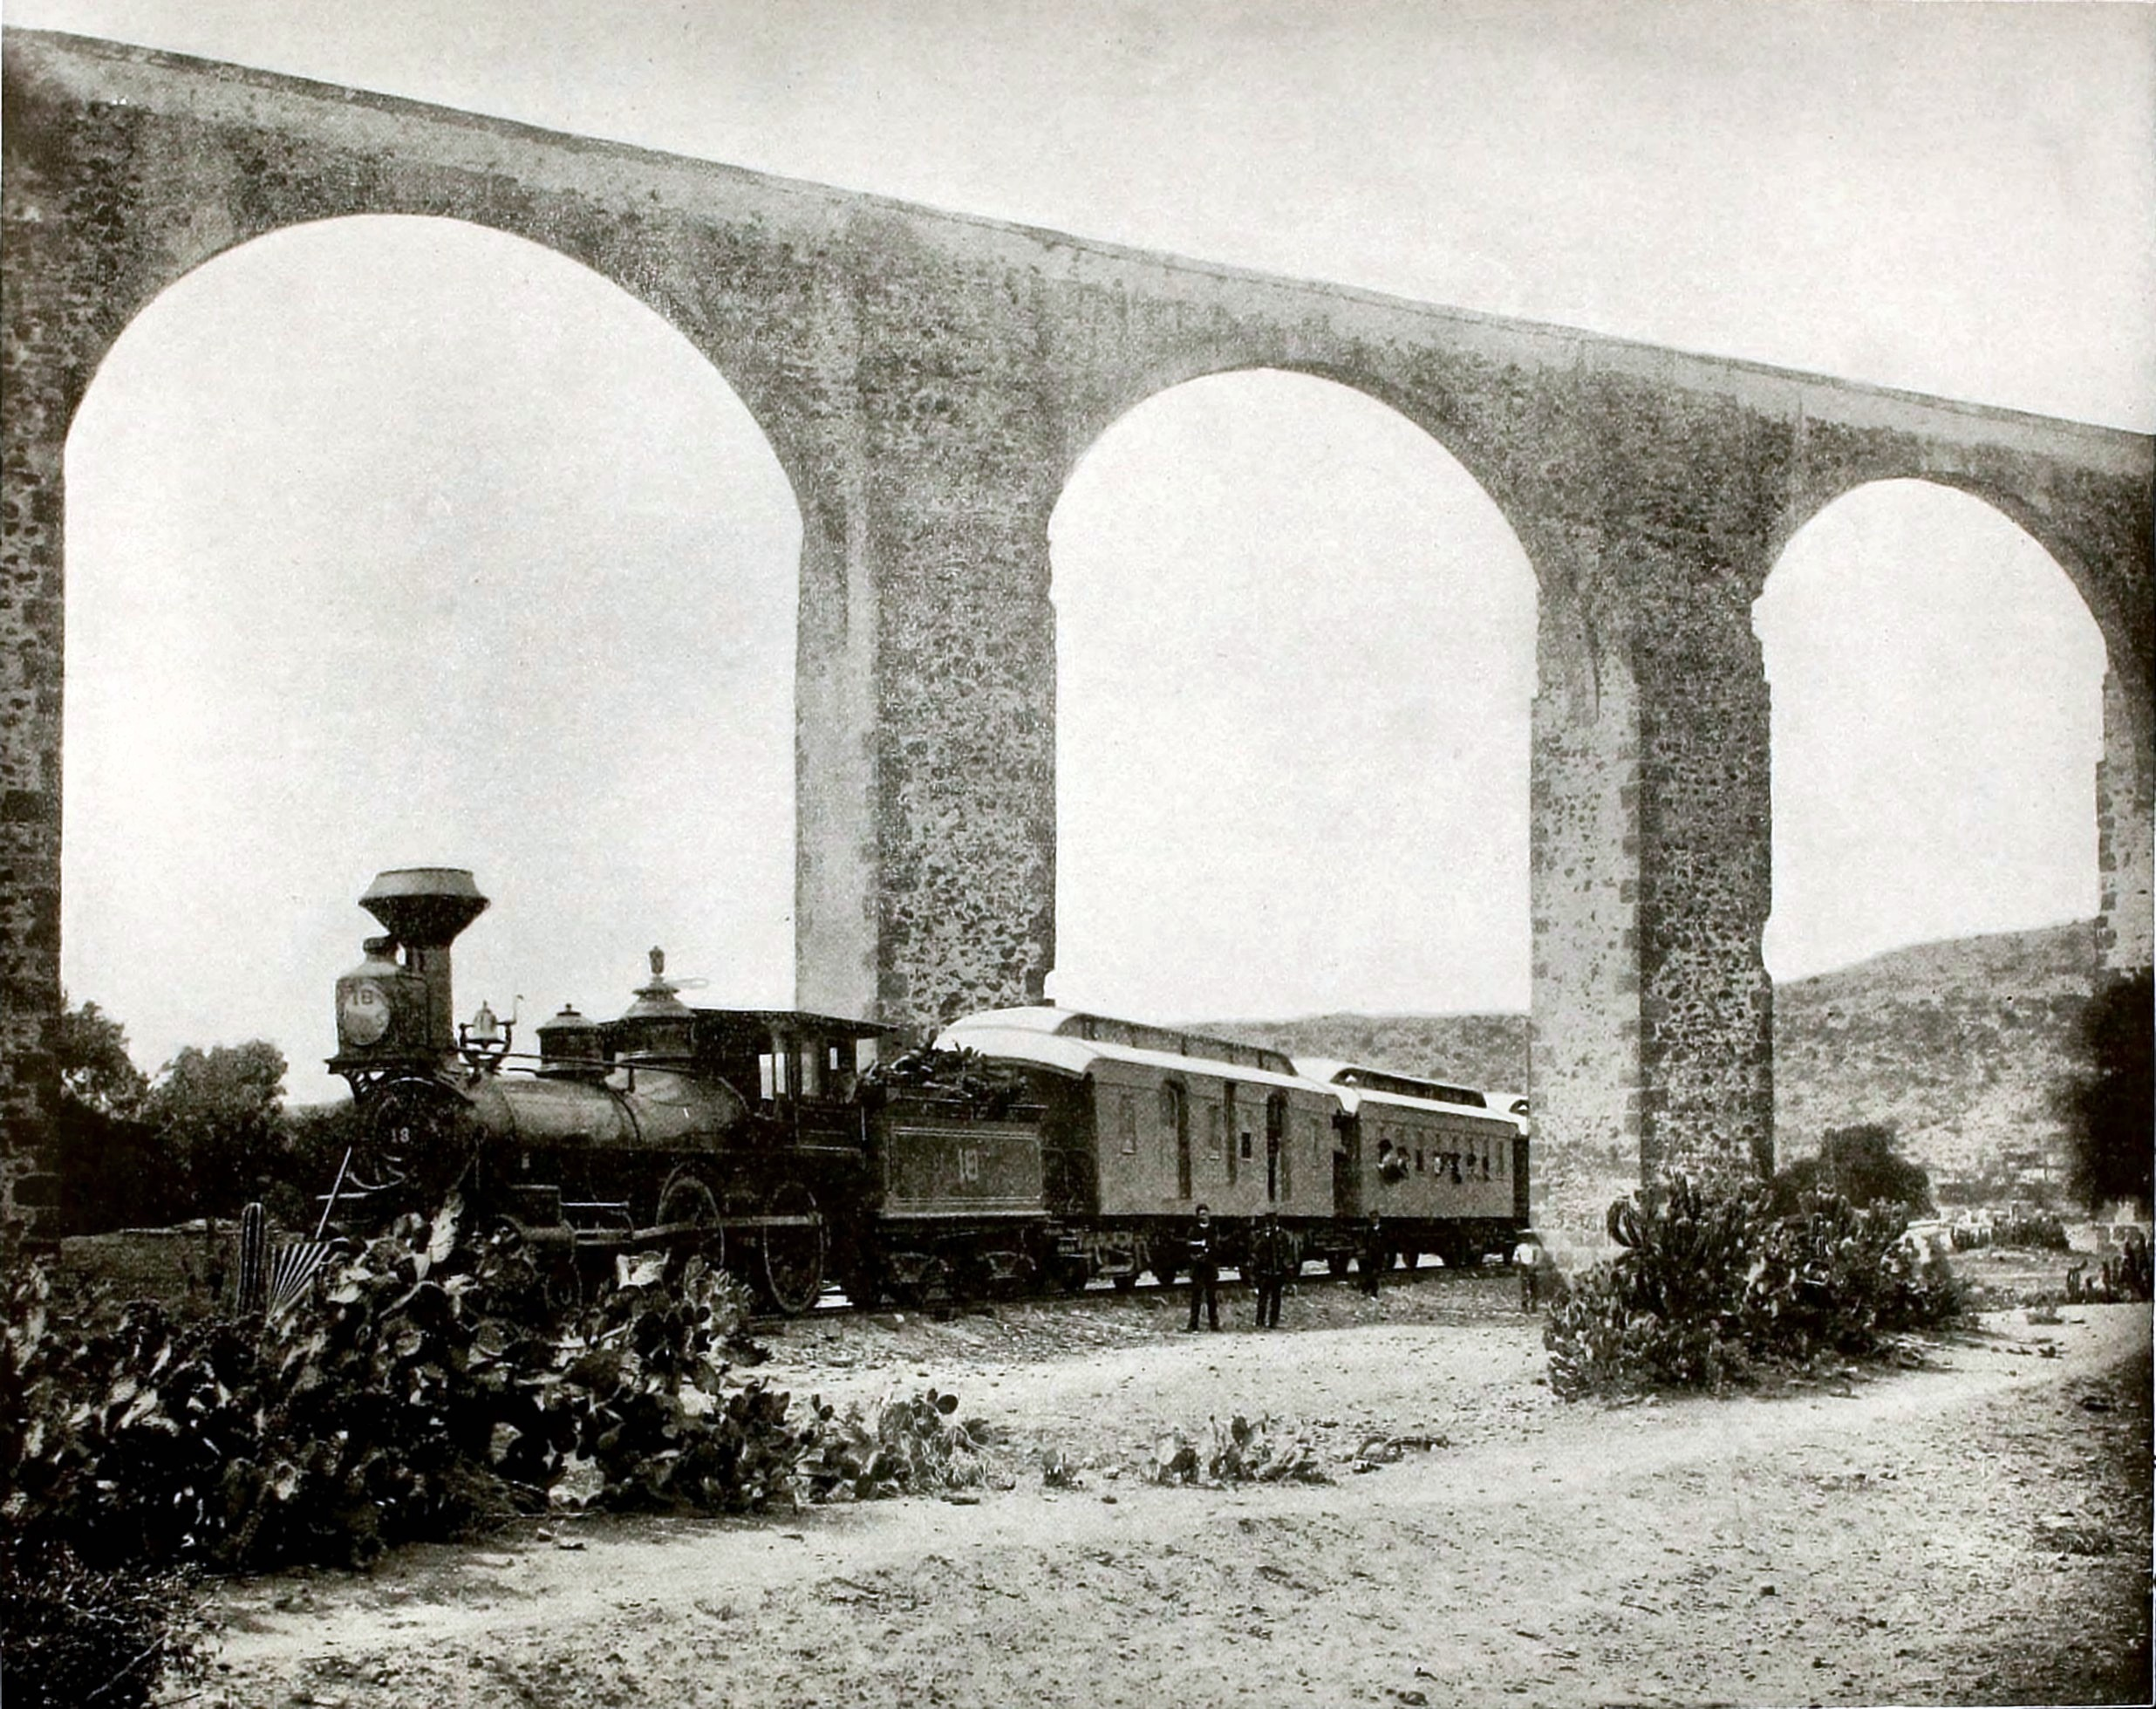 Acqueduct near Queretaro City, Mexico about 1892